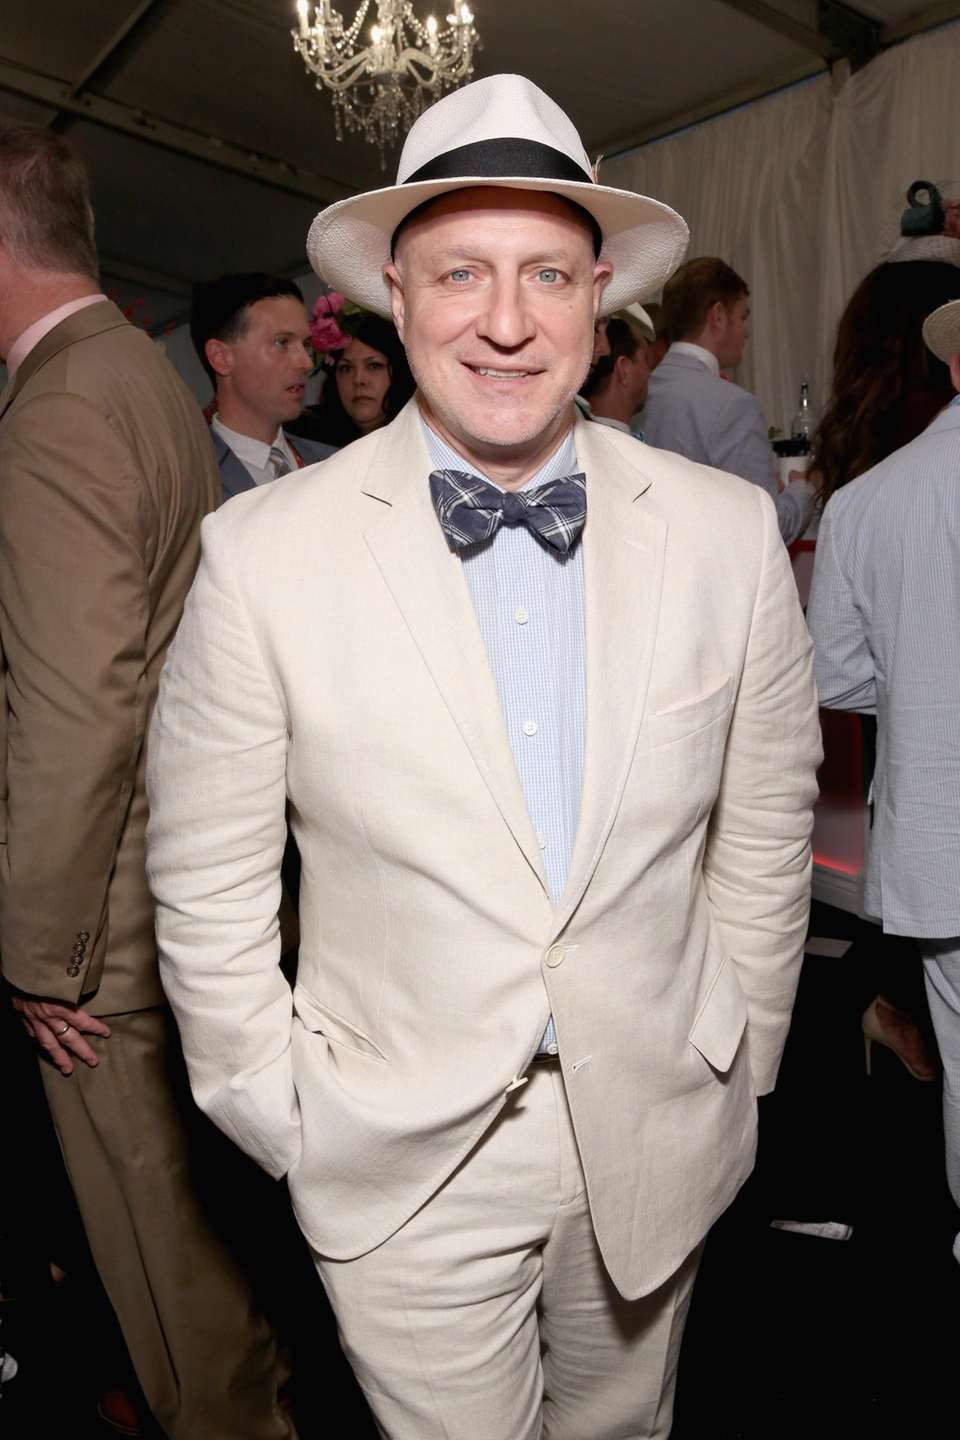 Chef Tom Colicchio attends Kentucky Derby 144 on